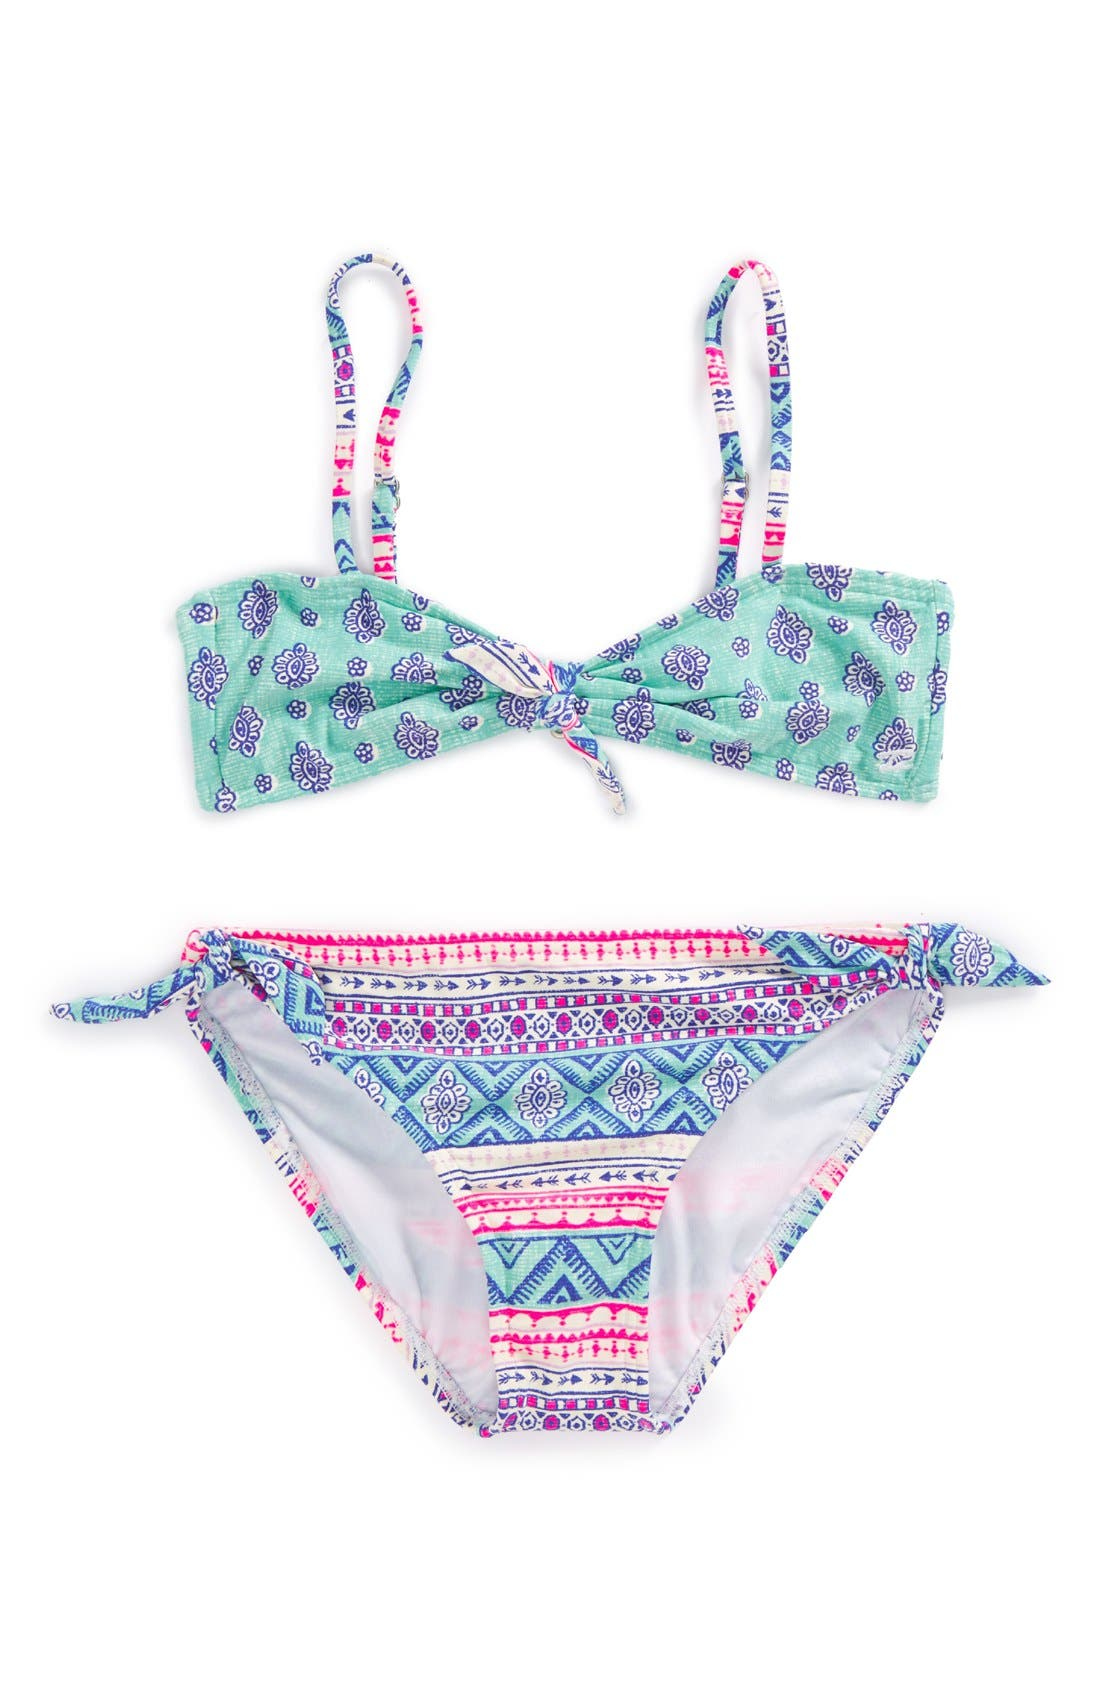 Alternate Image 1 Selected - Billabong 'Hippie Chic' Two-Piece Bandeau Swimsuit (Big Girls)